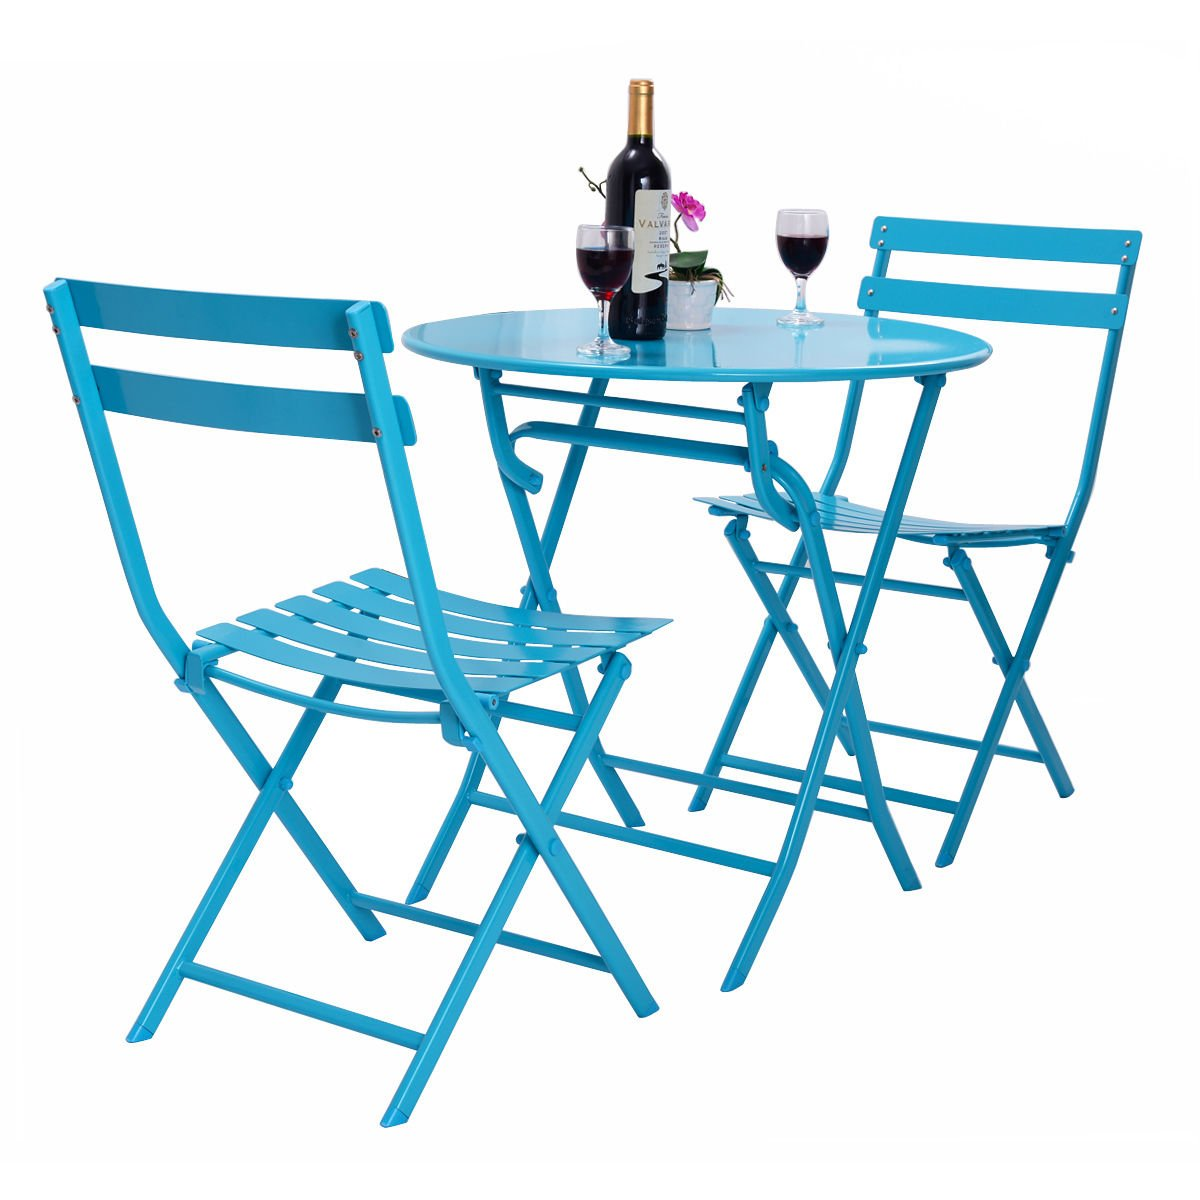 3 Pcs. Blue Table Chair Set Foldable Outdoor Patio Garden Pool Metal Furniture by Allblessings (Image #1)